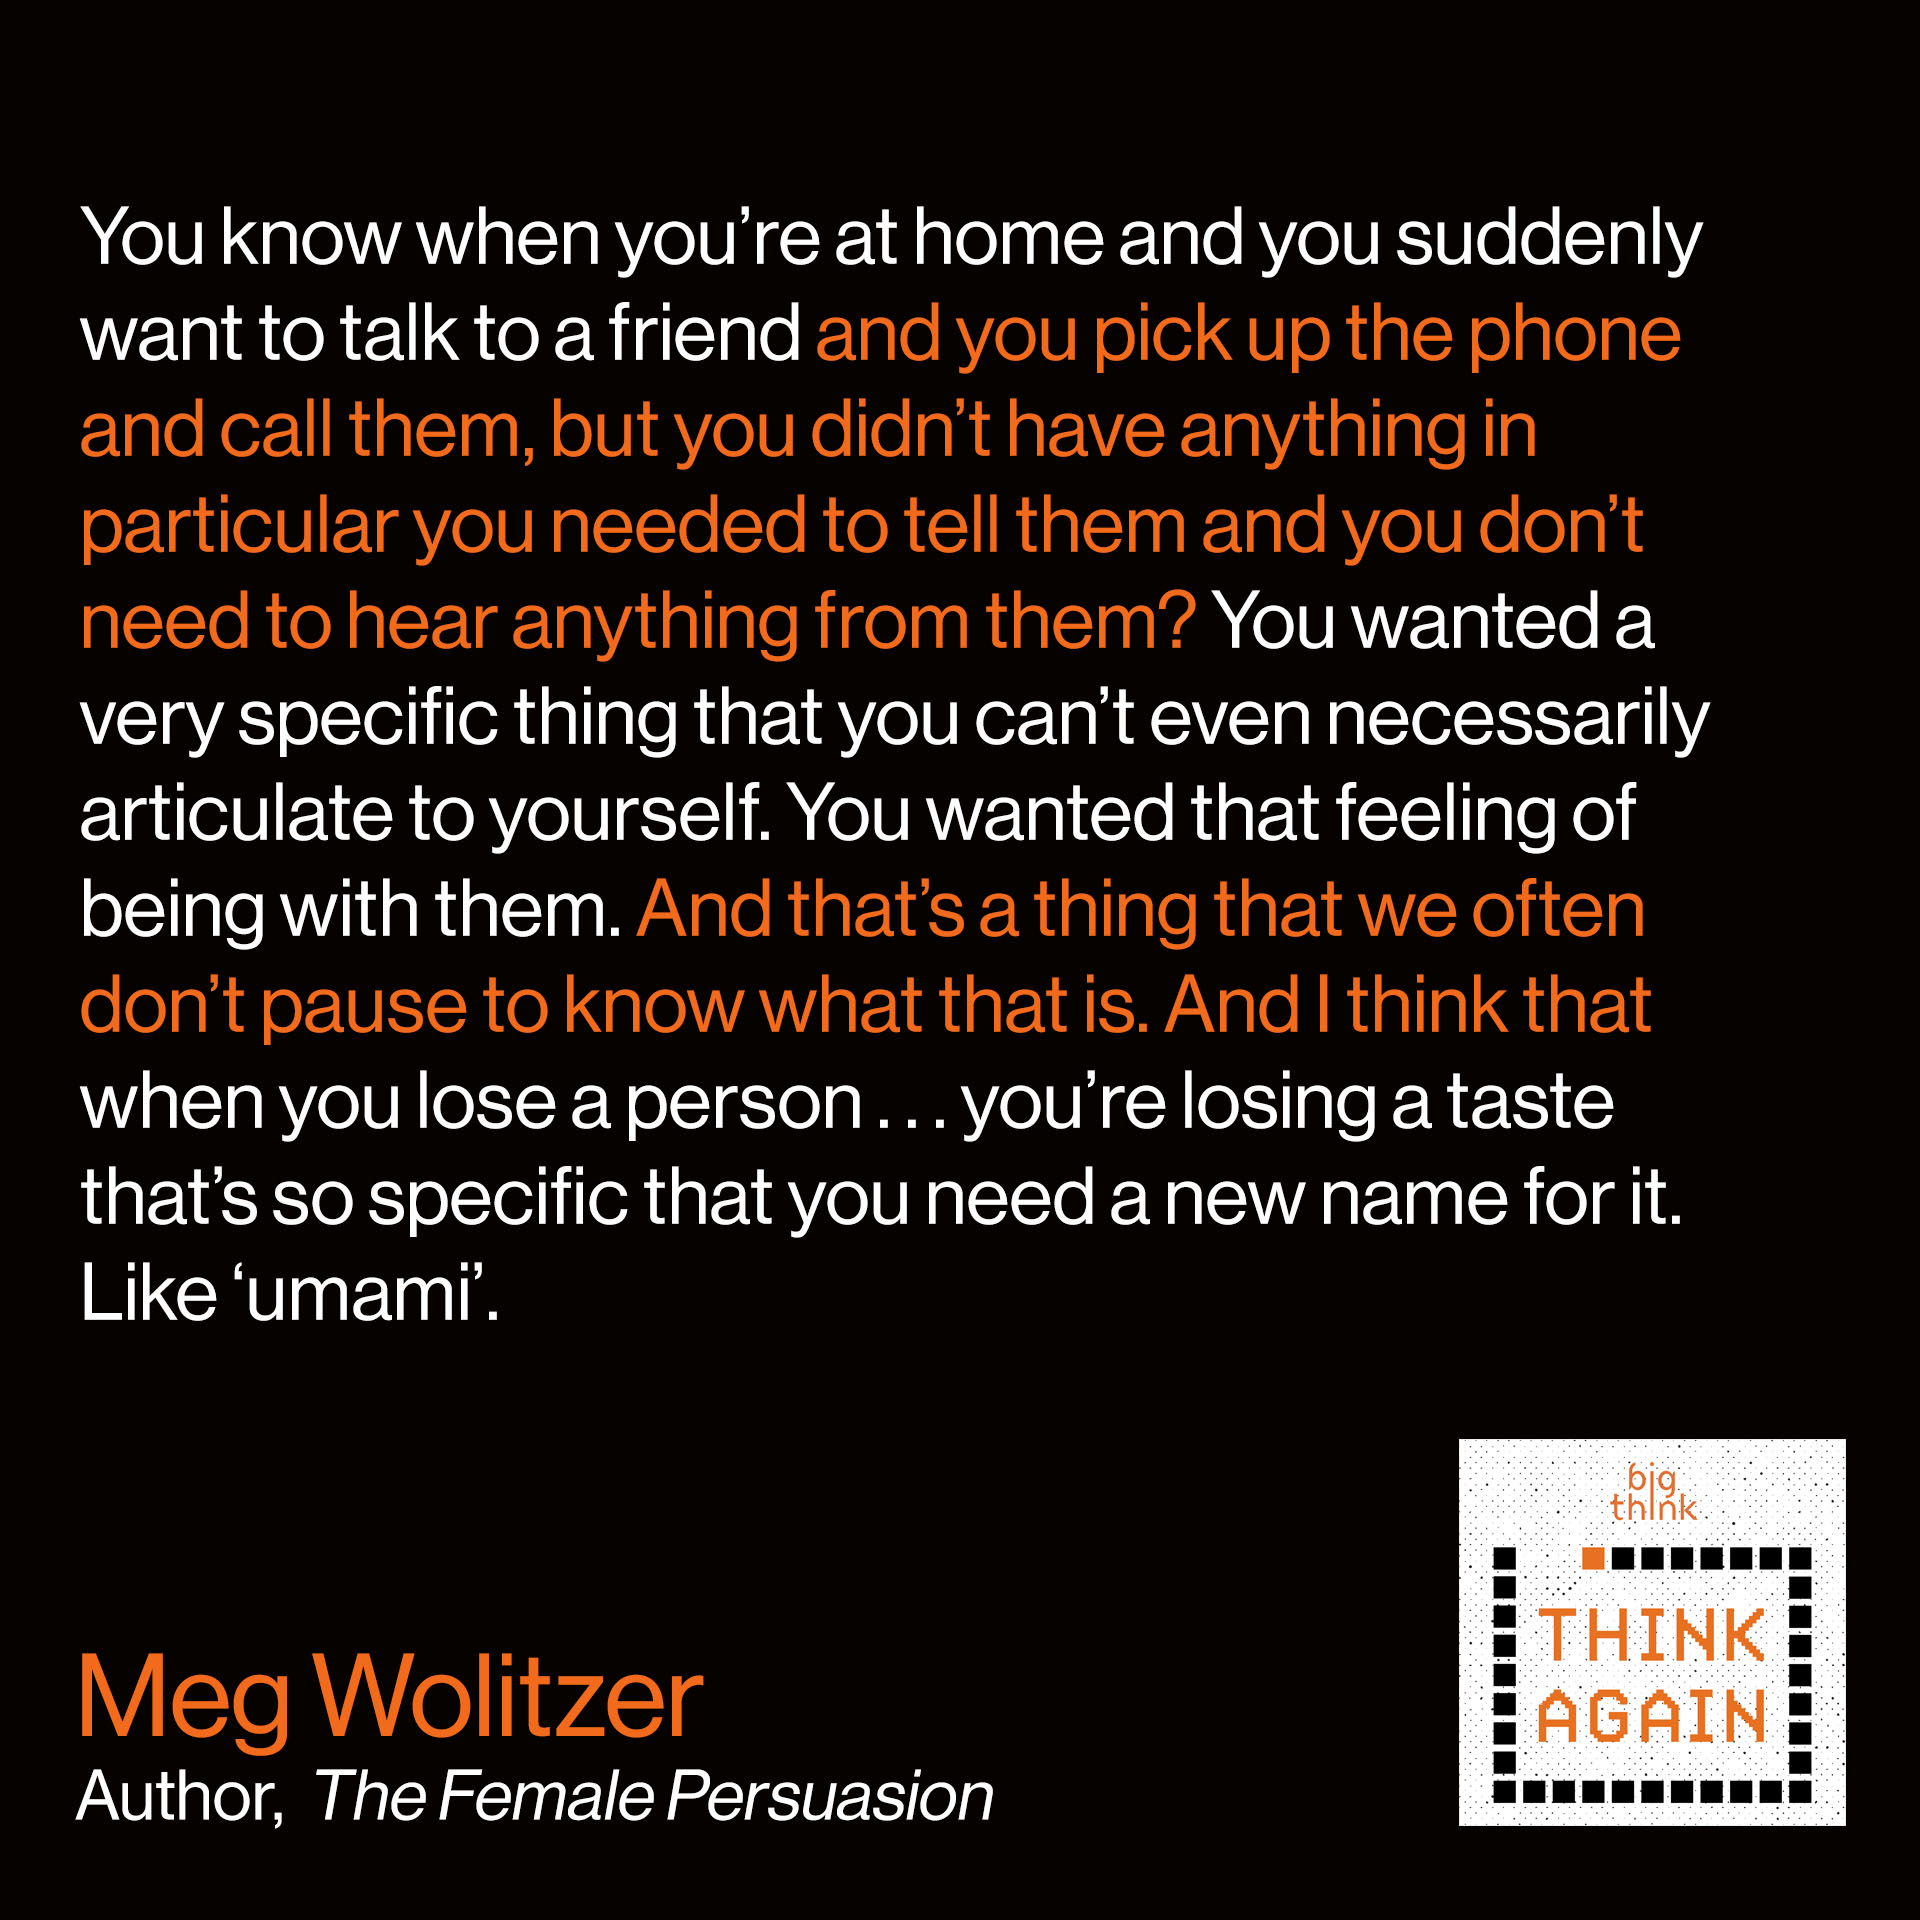 Meg Wolitzer Quote: You know when you're at home and you suddenly want to talk to a friend and you pick up the phone and call them, but you didn't have anything in particular you needed to tell them and you don't need to hear anything from them? You wanted a very specific thing that you can't even necessarily articulate to yourself. You wanted that feeling of being with them. And that's a thing that we often don't pause to know what that is. And I think that when you lose a person…you're losing a taste that's so specific that you need a new name for it, like 'umami'.